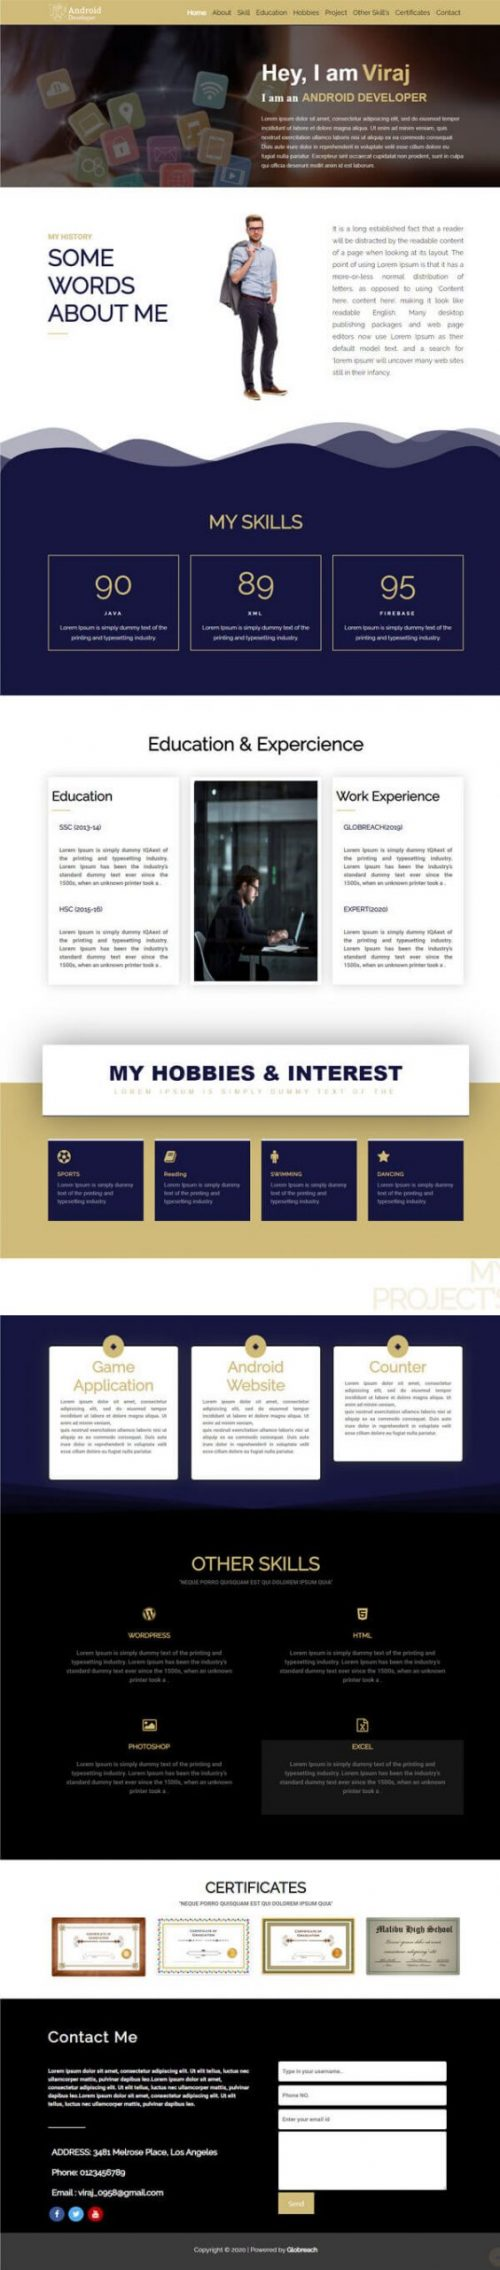 Ralph – Mobile Apps professional template.